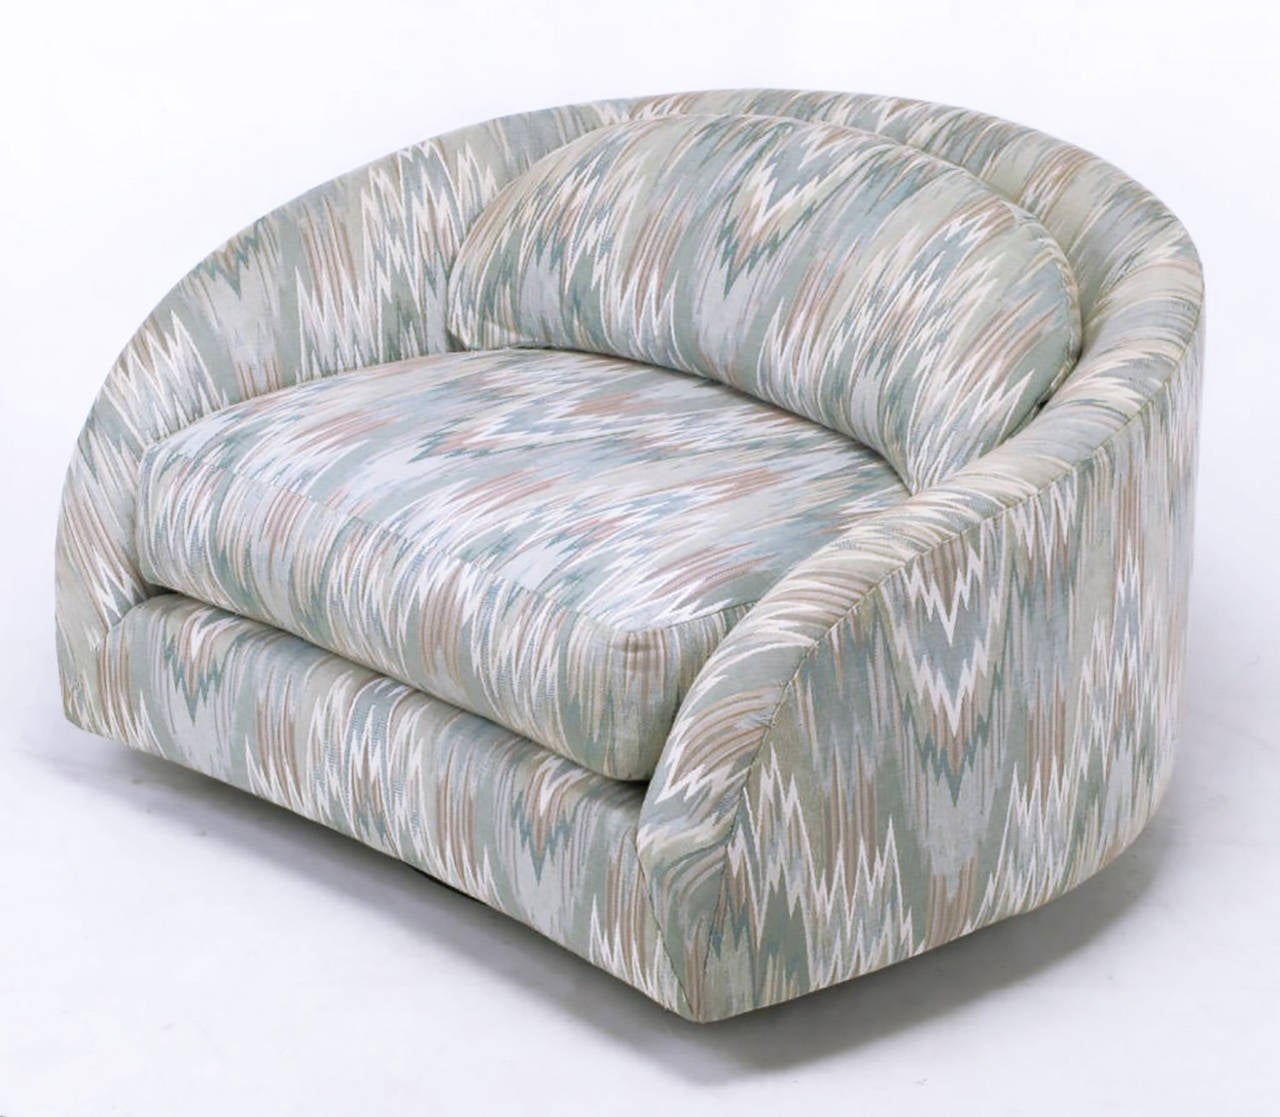 Swiveling barrel back club chair in a periwinkle blue and rose flame stich upholstery. Low slung and extremely comfortable with wide, loose cushions.